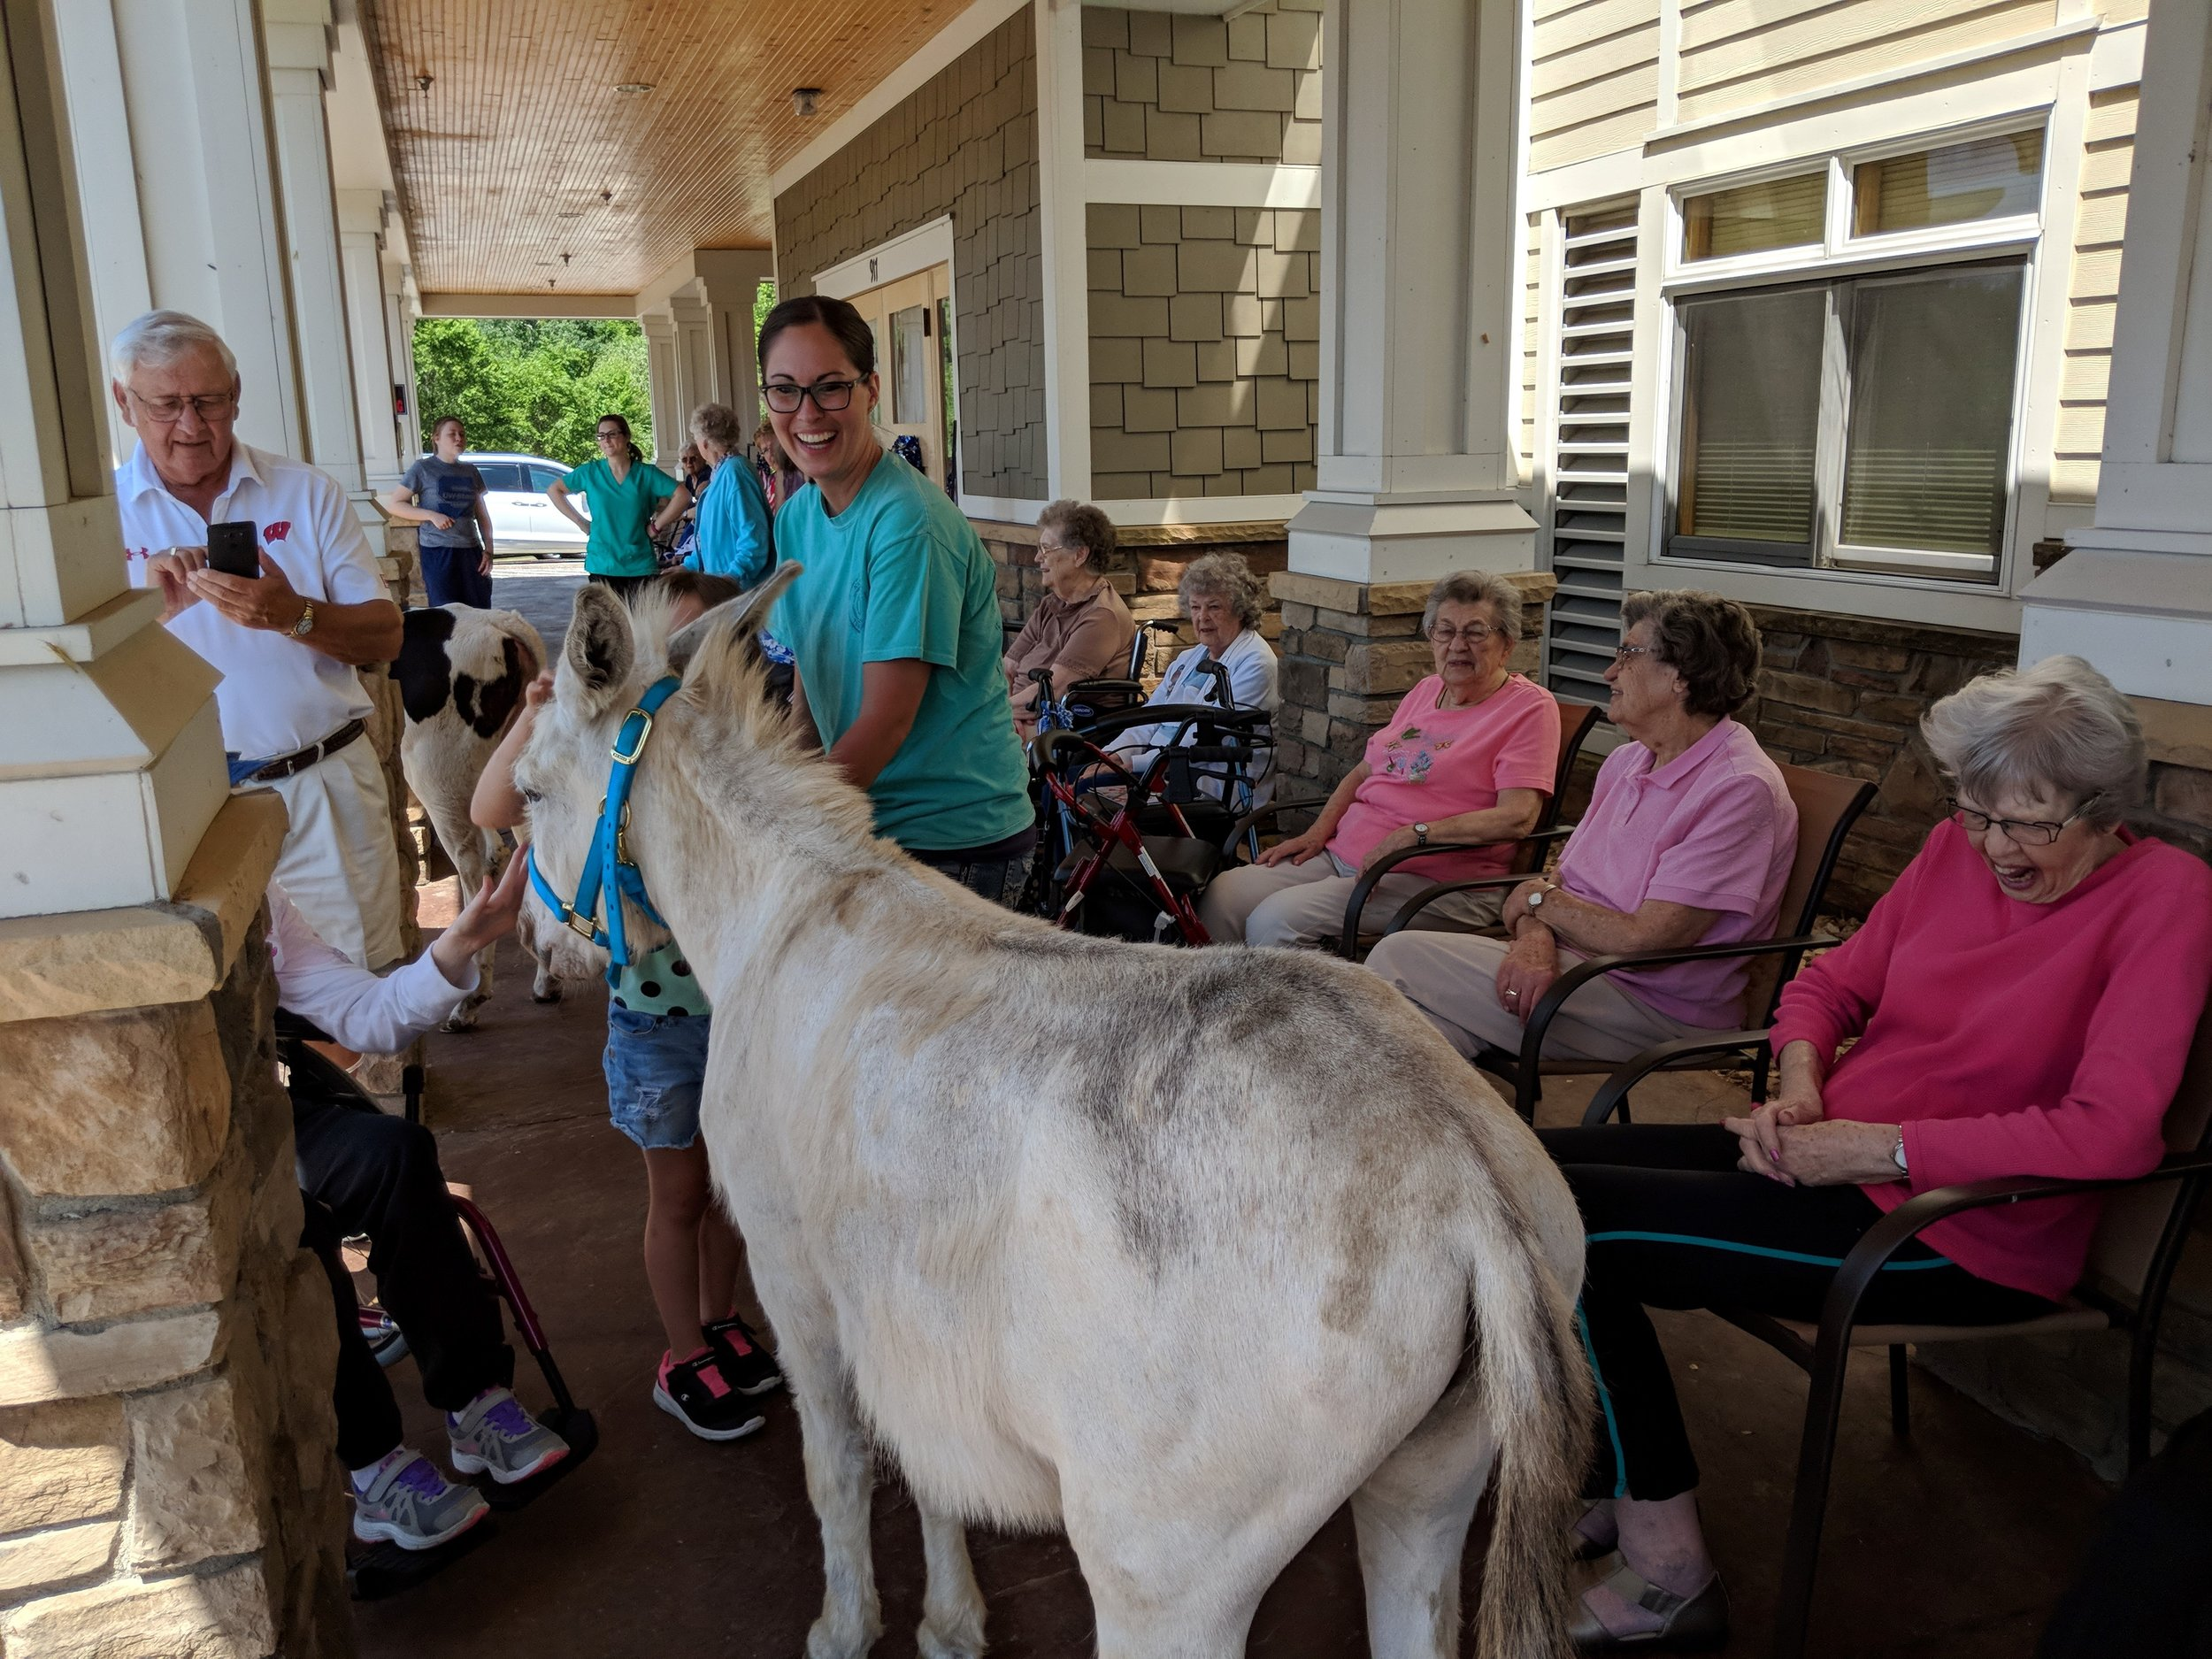 A visit from a fair calf & a donkey!! Thank you Courtney for sharing your time and animals with our tenants! 5.jpg